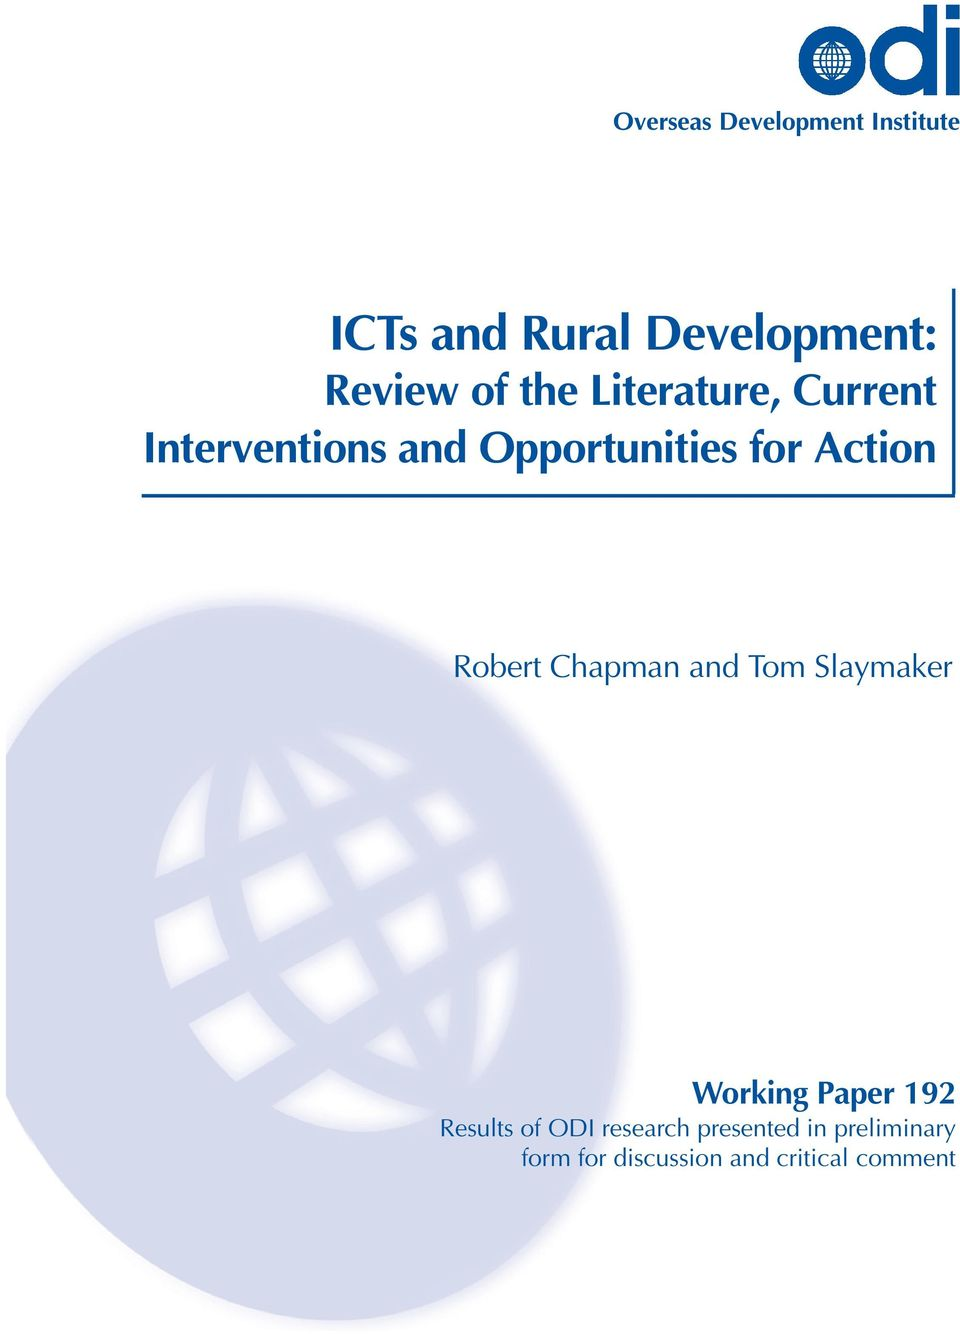 Robert Chapman and Tom Slaymaker Working Paper 192 Results of ODI